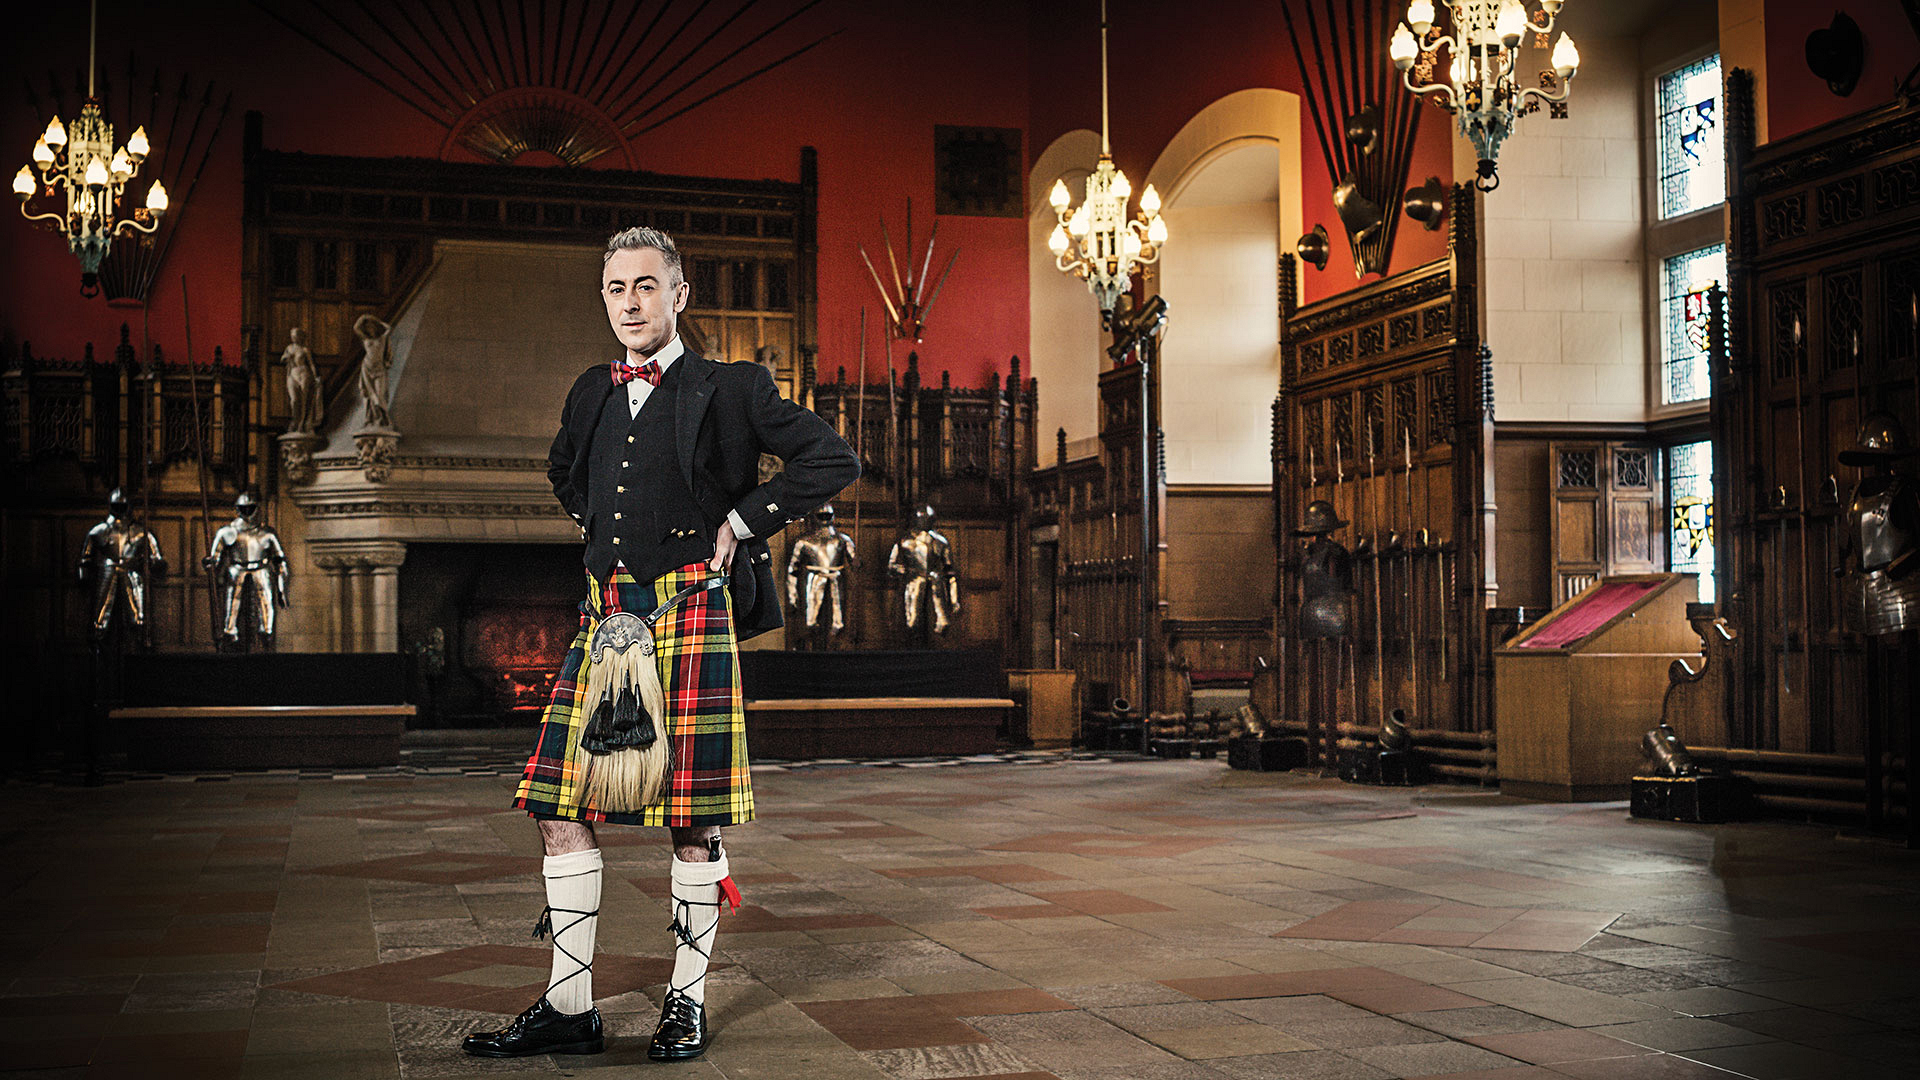 It's easy to have a bonnie good time with this great Scot!